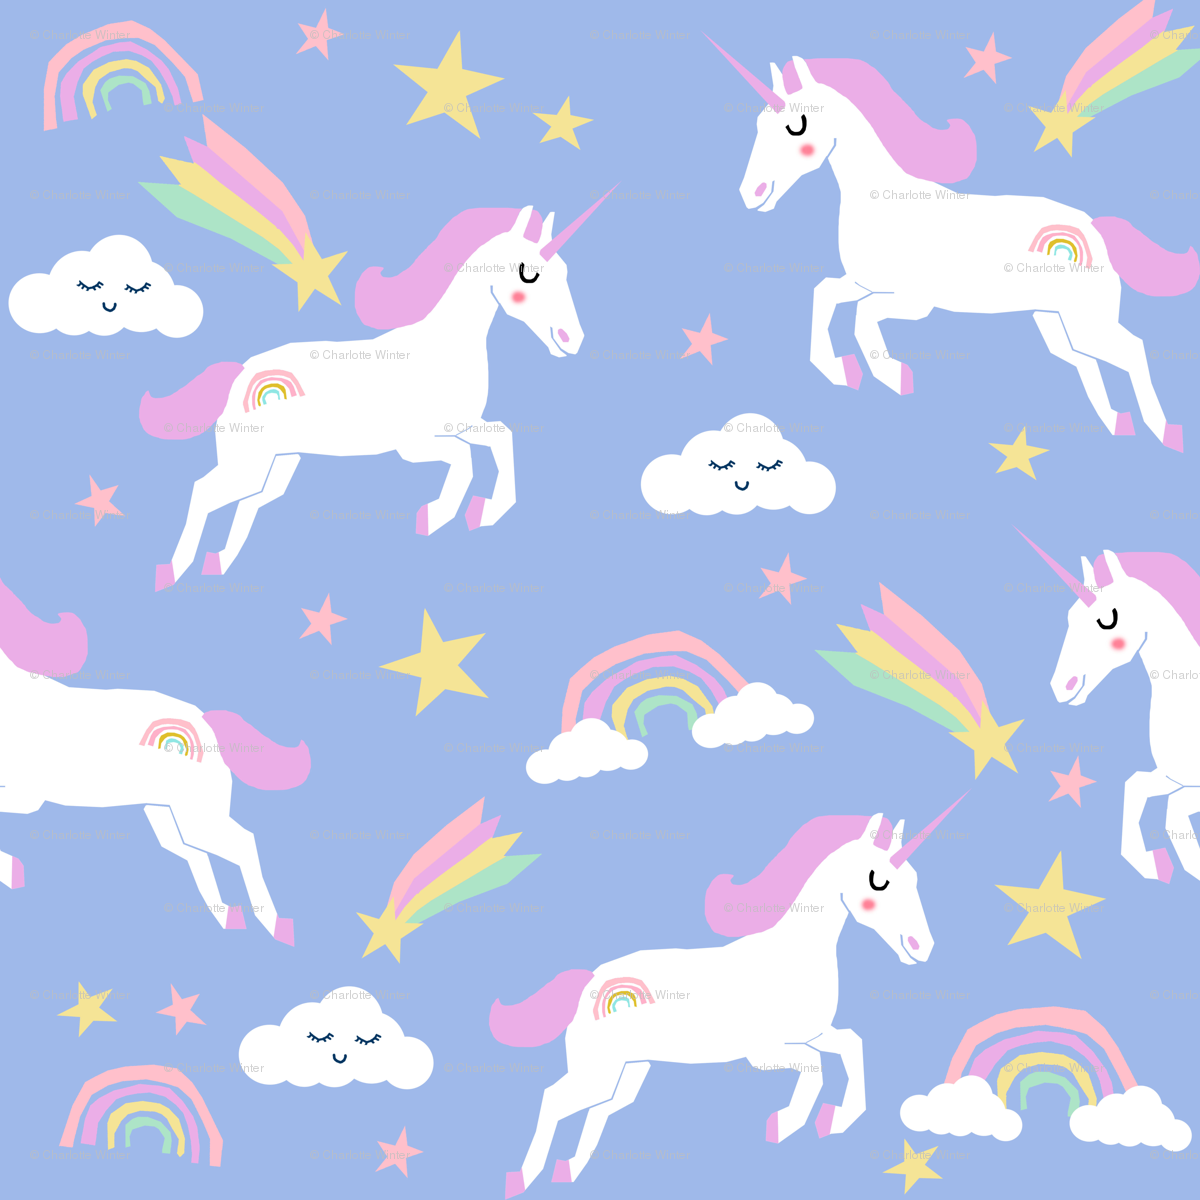 Pastel Unicorn Fabric Cute Girls Unicorns Wallpaper